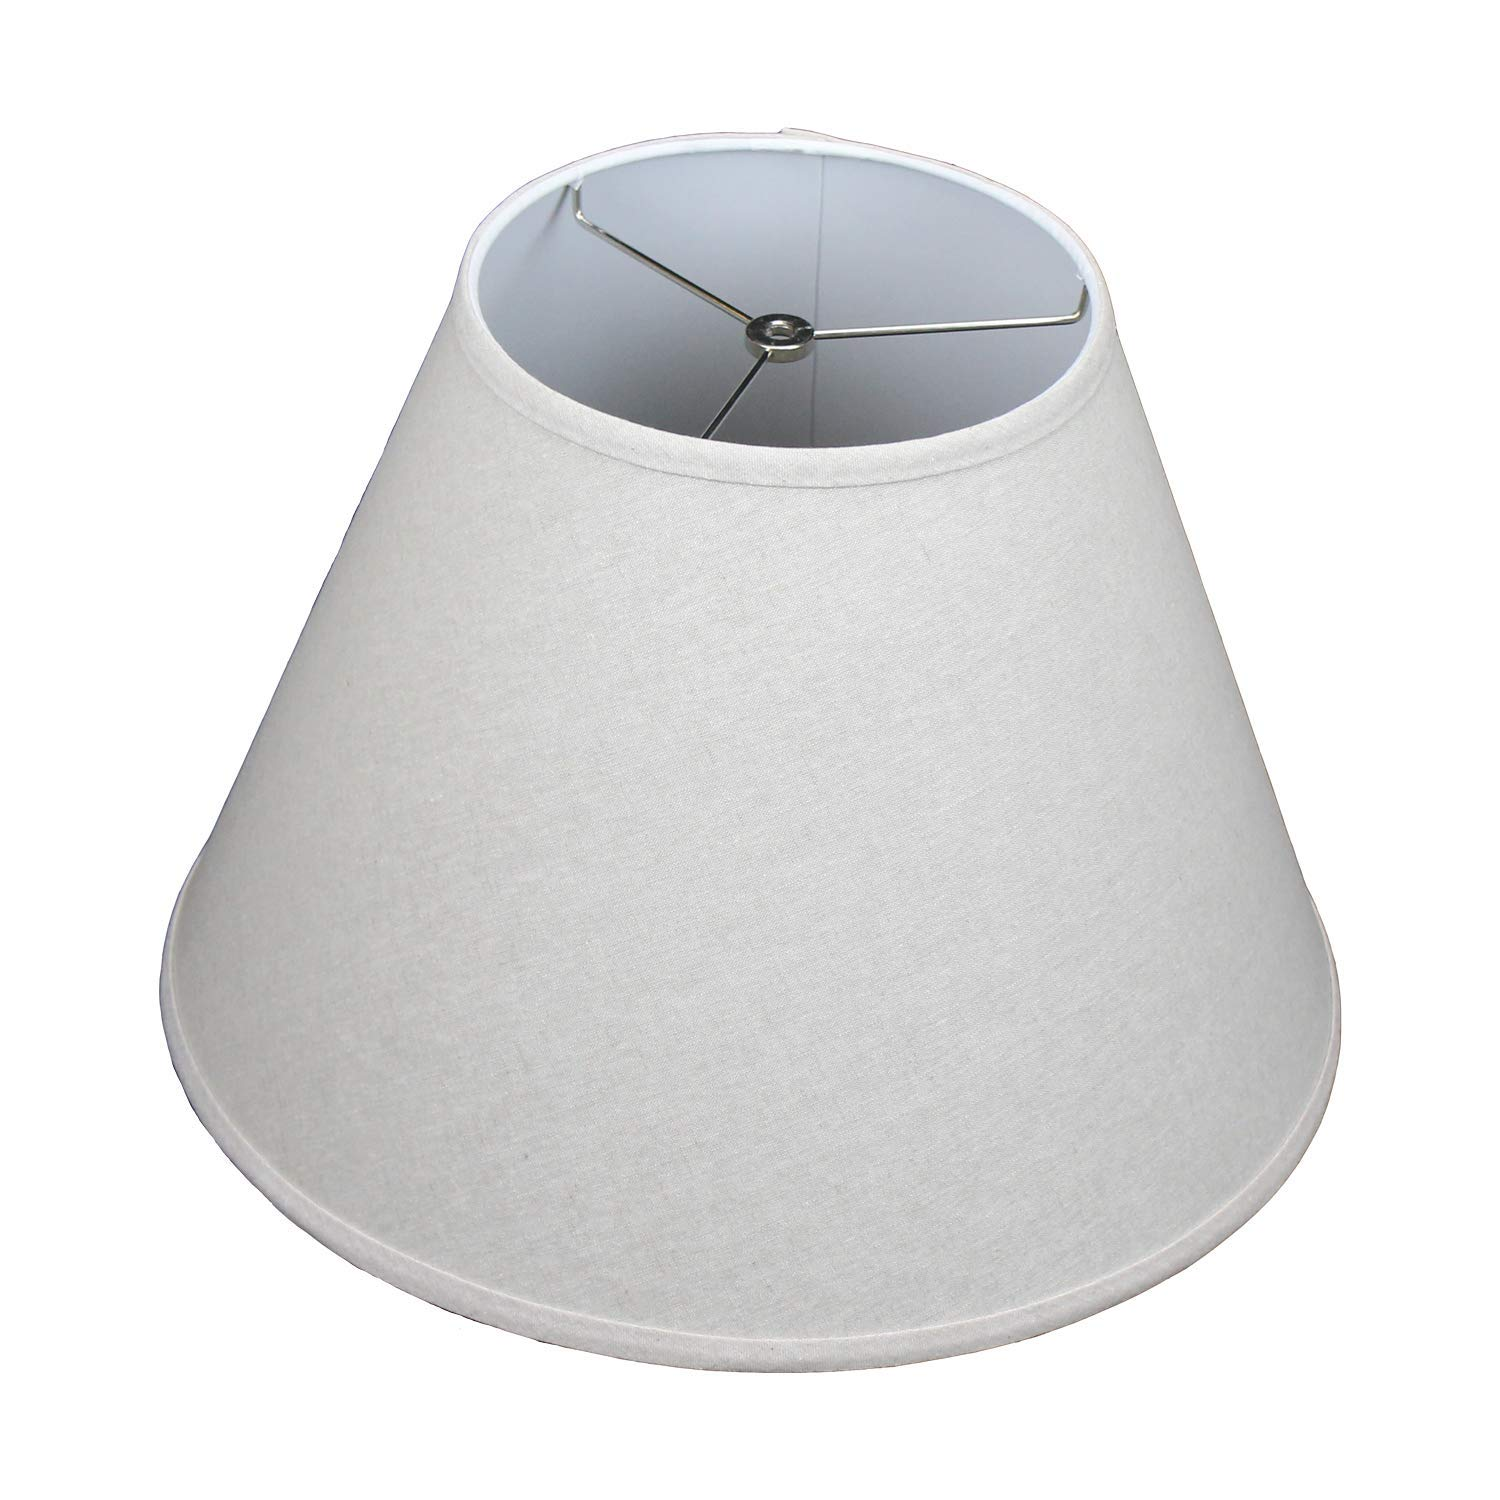 FenchelShades.com Lampshade 9'' Top Diameter x 18'' Bottom Diameter x 13'' Slant Height with Washer (Spider) Attachment for Lamps with a Harp (Couture Flax)